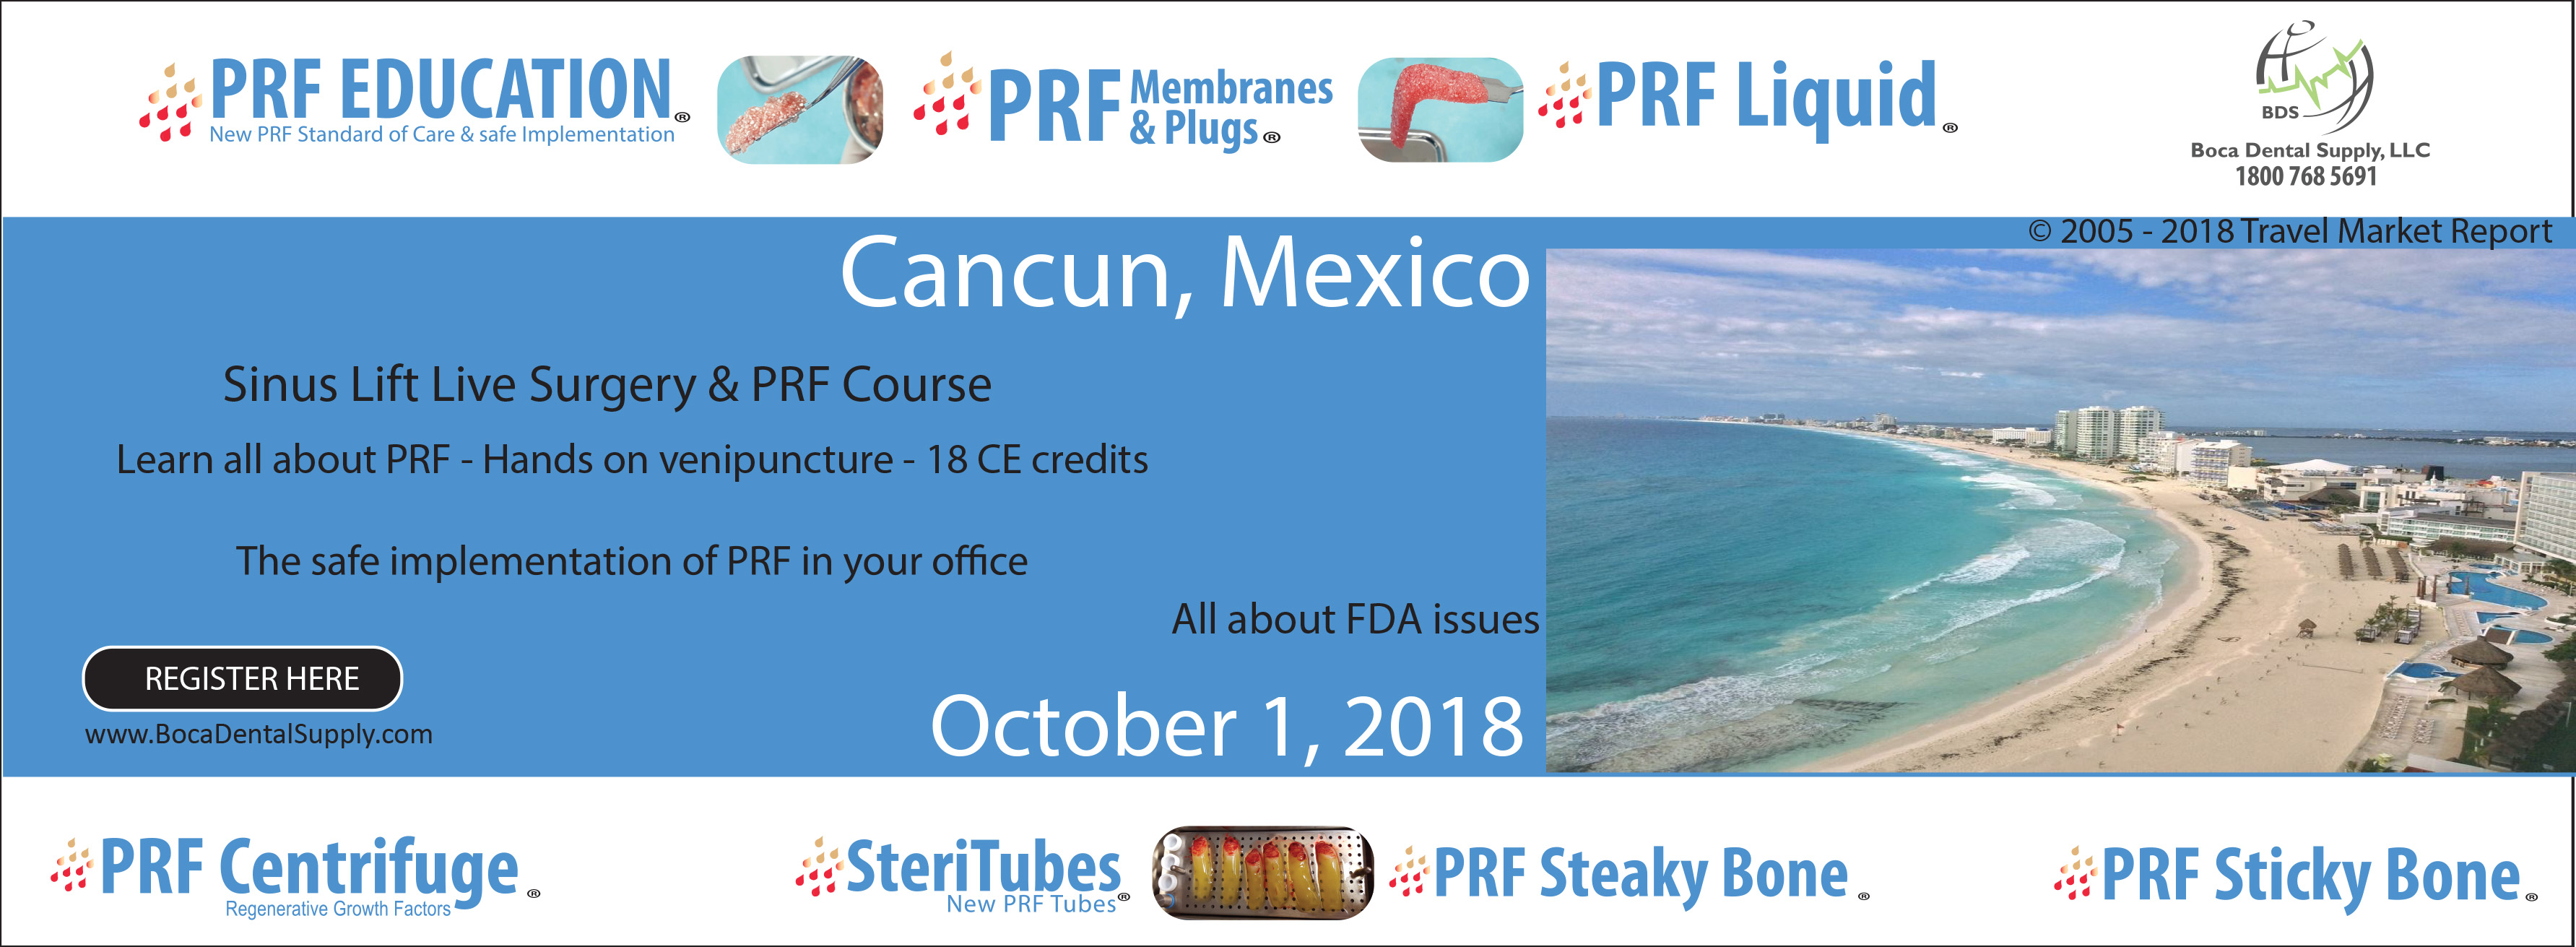 prf-live-surgery-cancun-october-2018.jpg